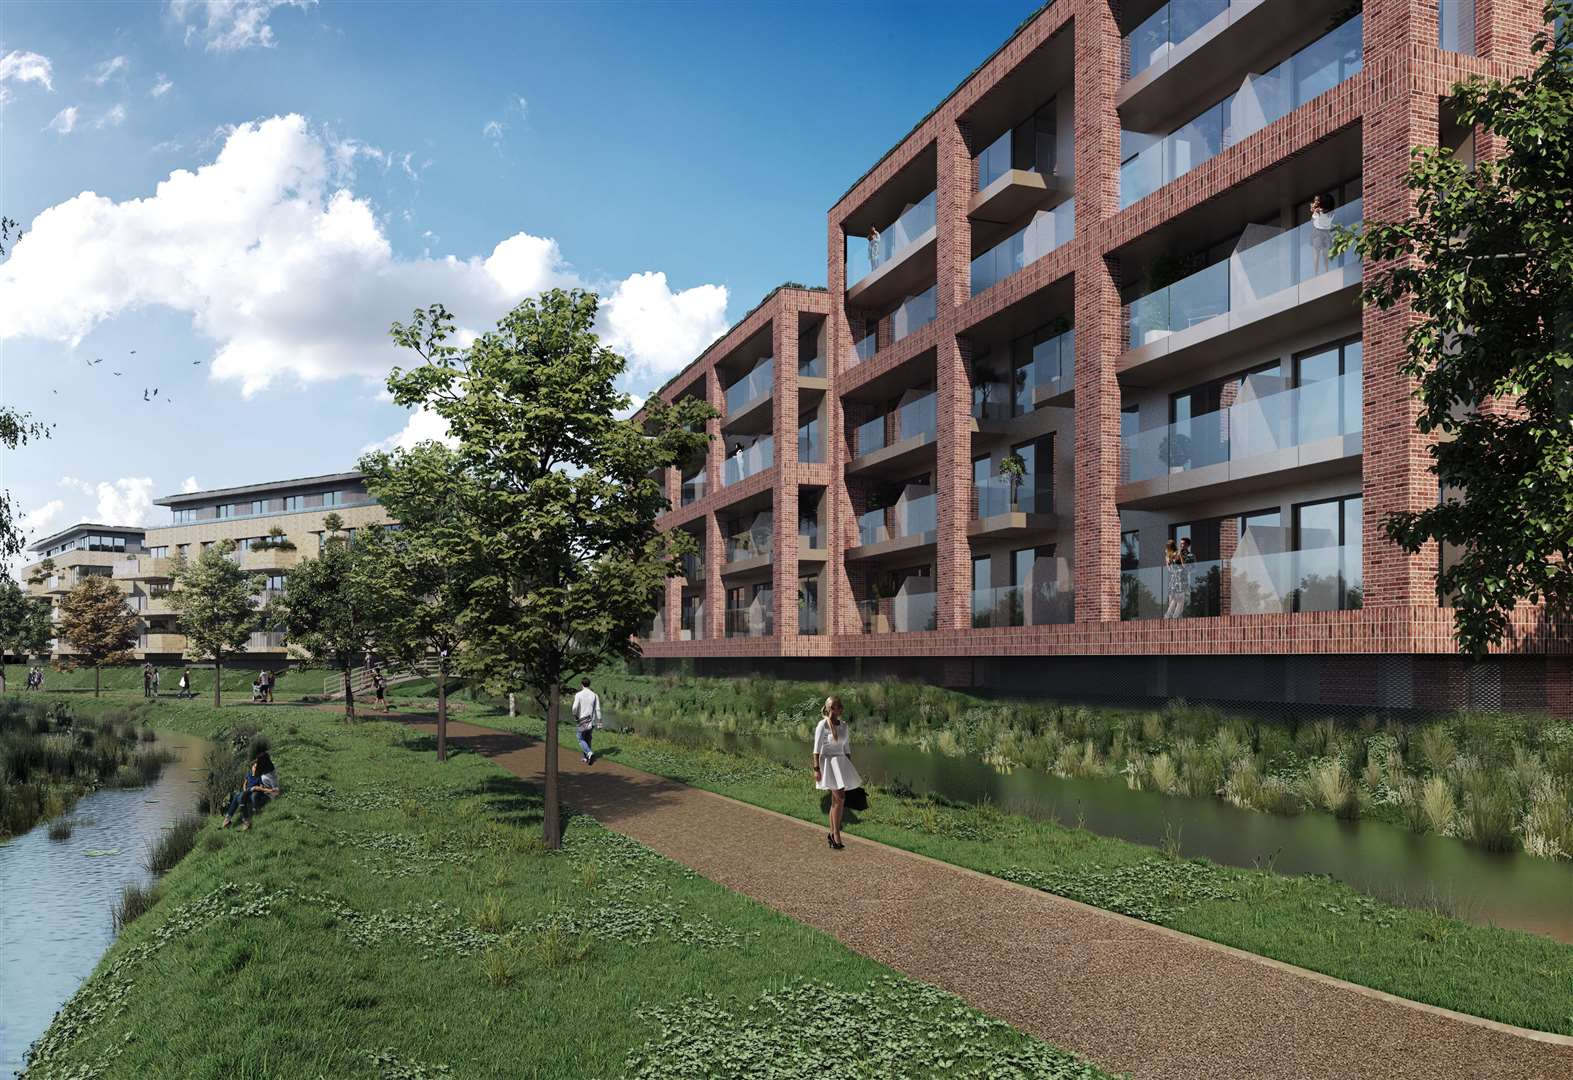 Changes to plans for 234 flats